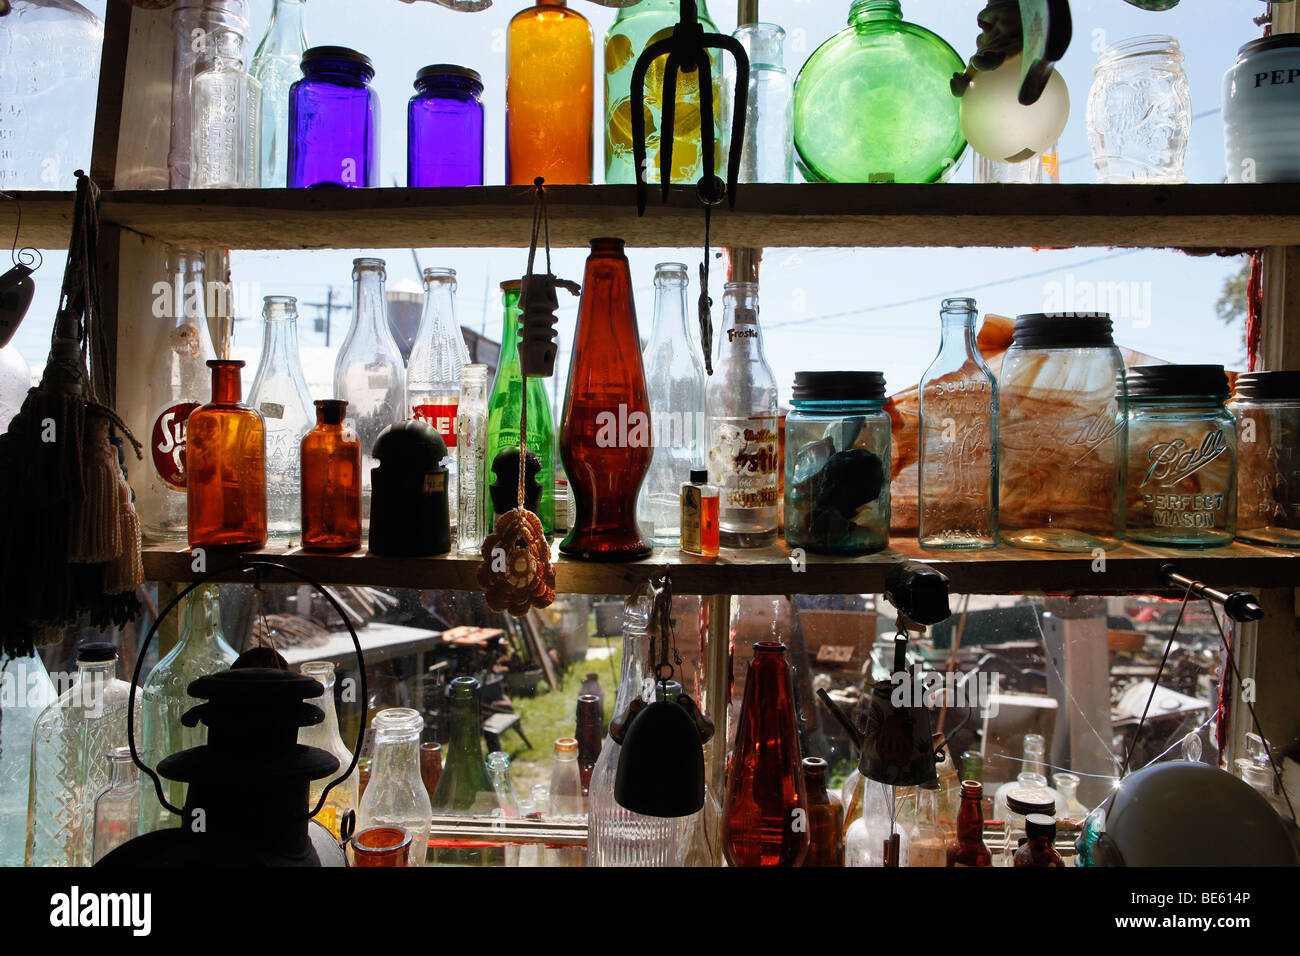 Items for sale, junk store, Searsport, Maine Stock Photo